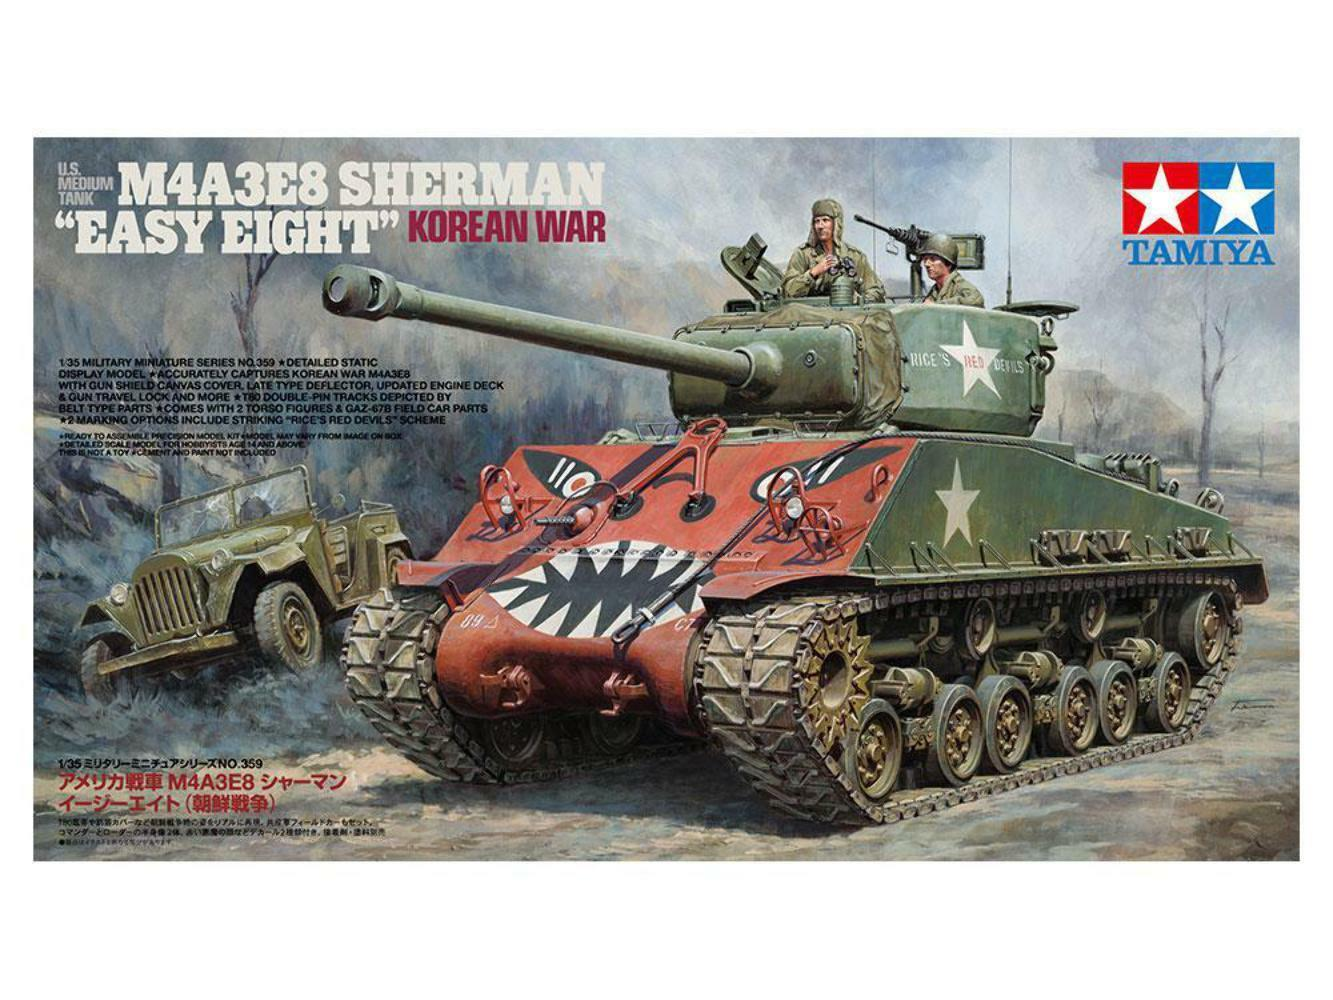 Tamiya 35359 U.S. Medium Tank M4A3E8 Sherman  Easy Eight  Korean War